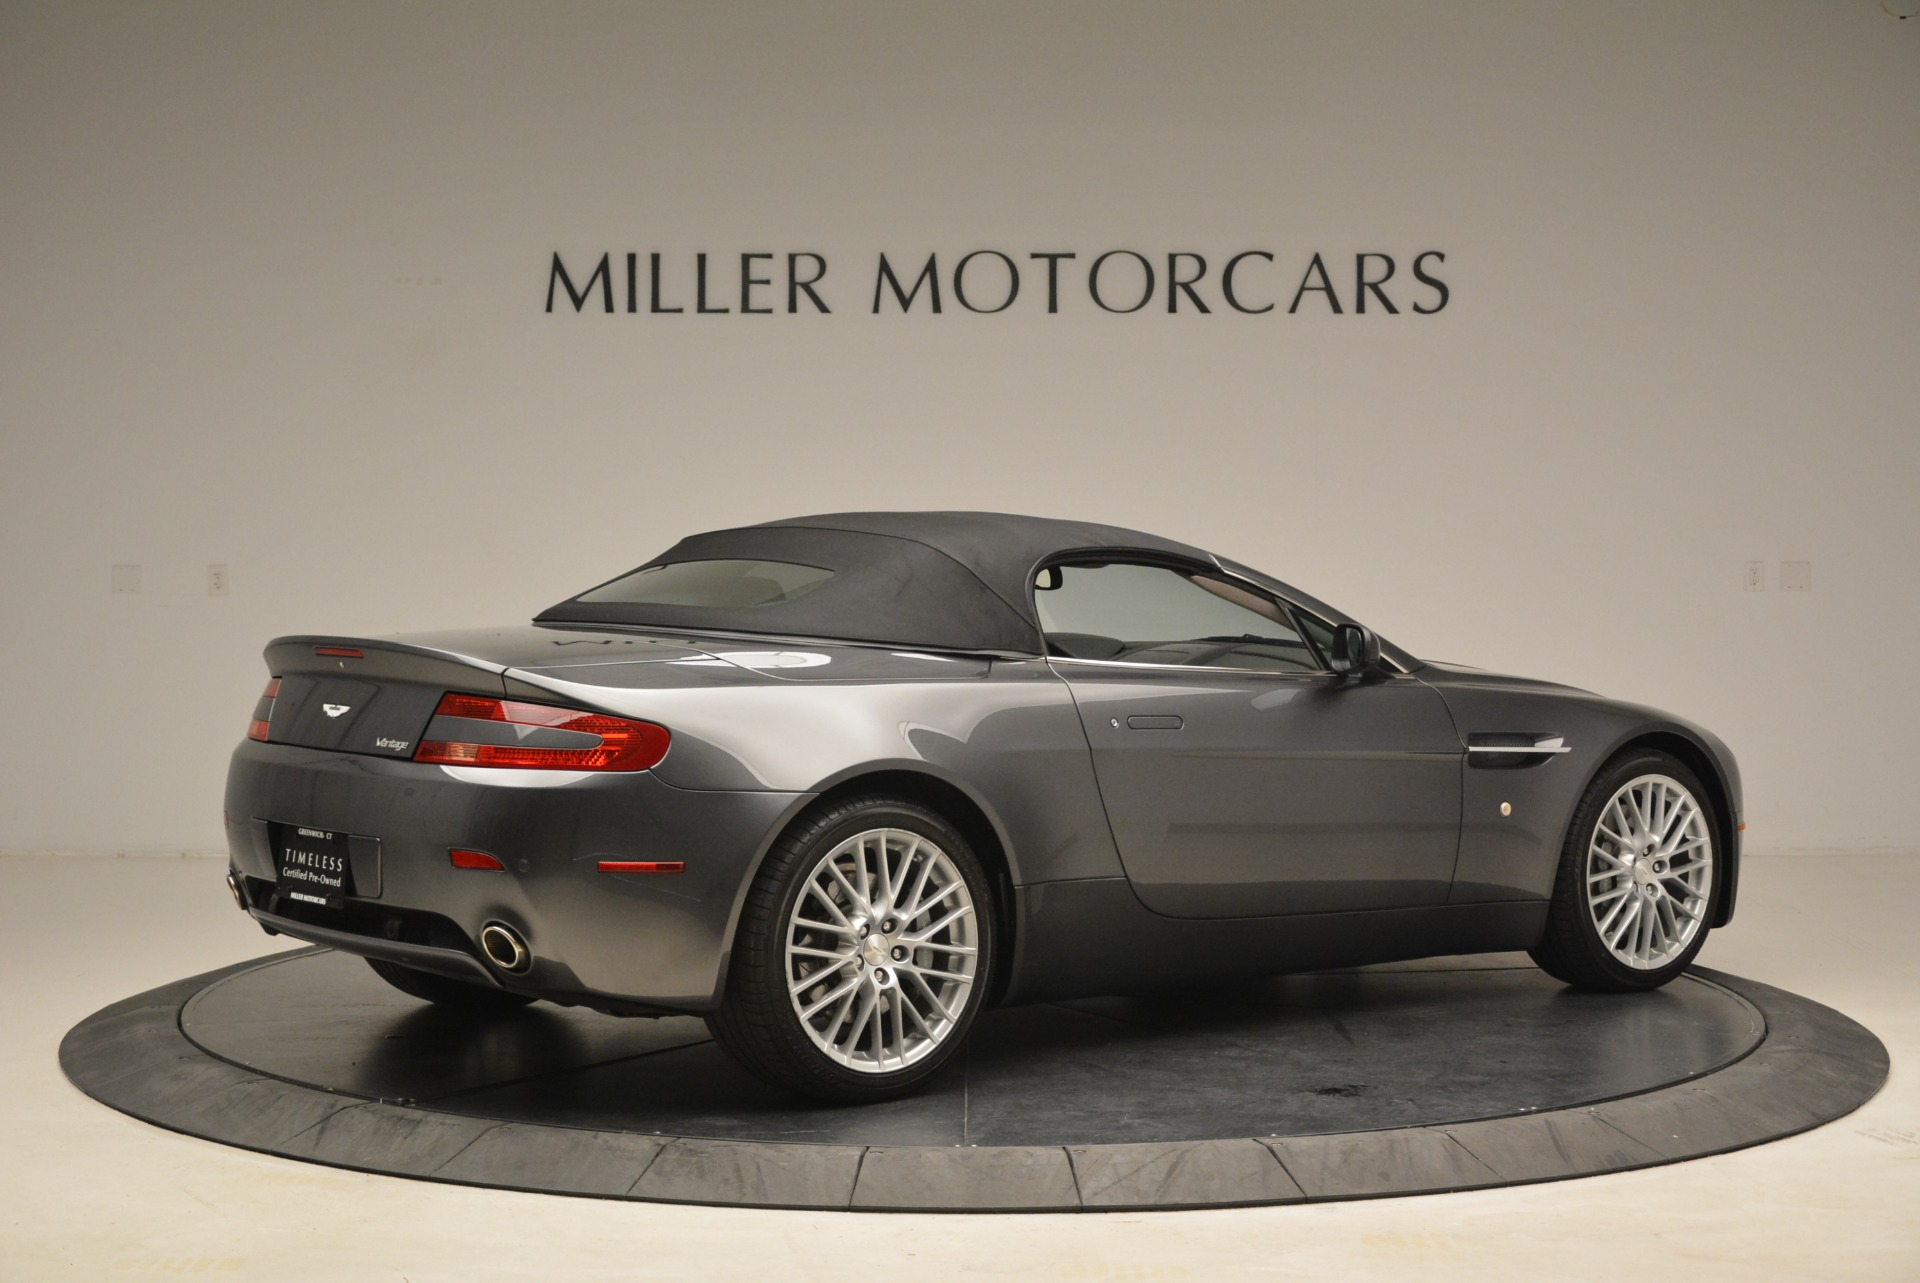 Used 2009 Aston Martin V8 Vantage Roadster For Sale In Westport, CT 2123_p20